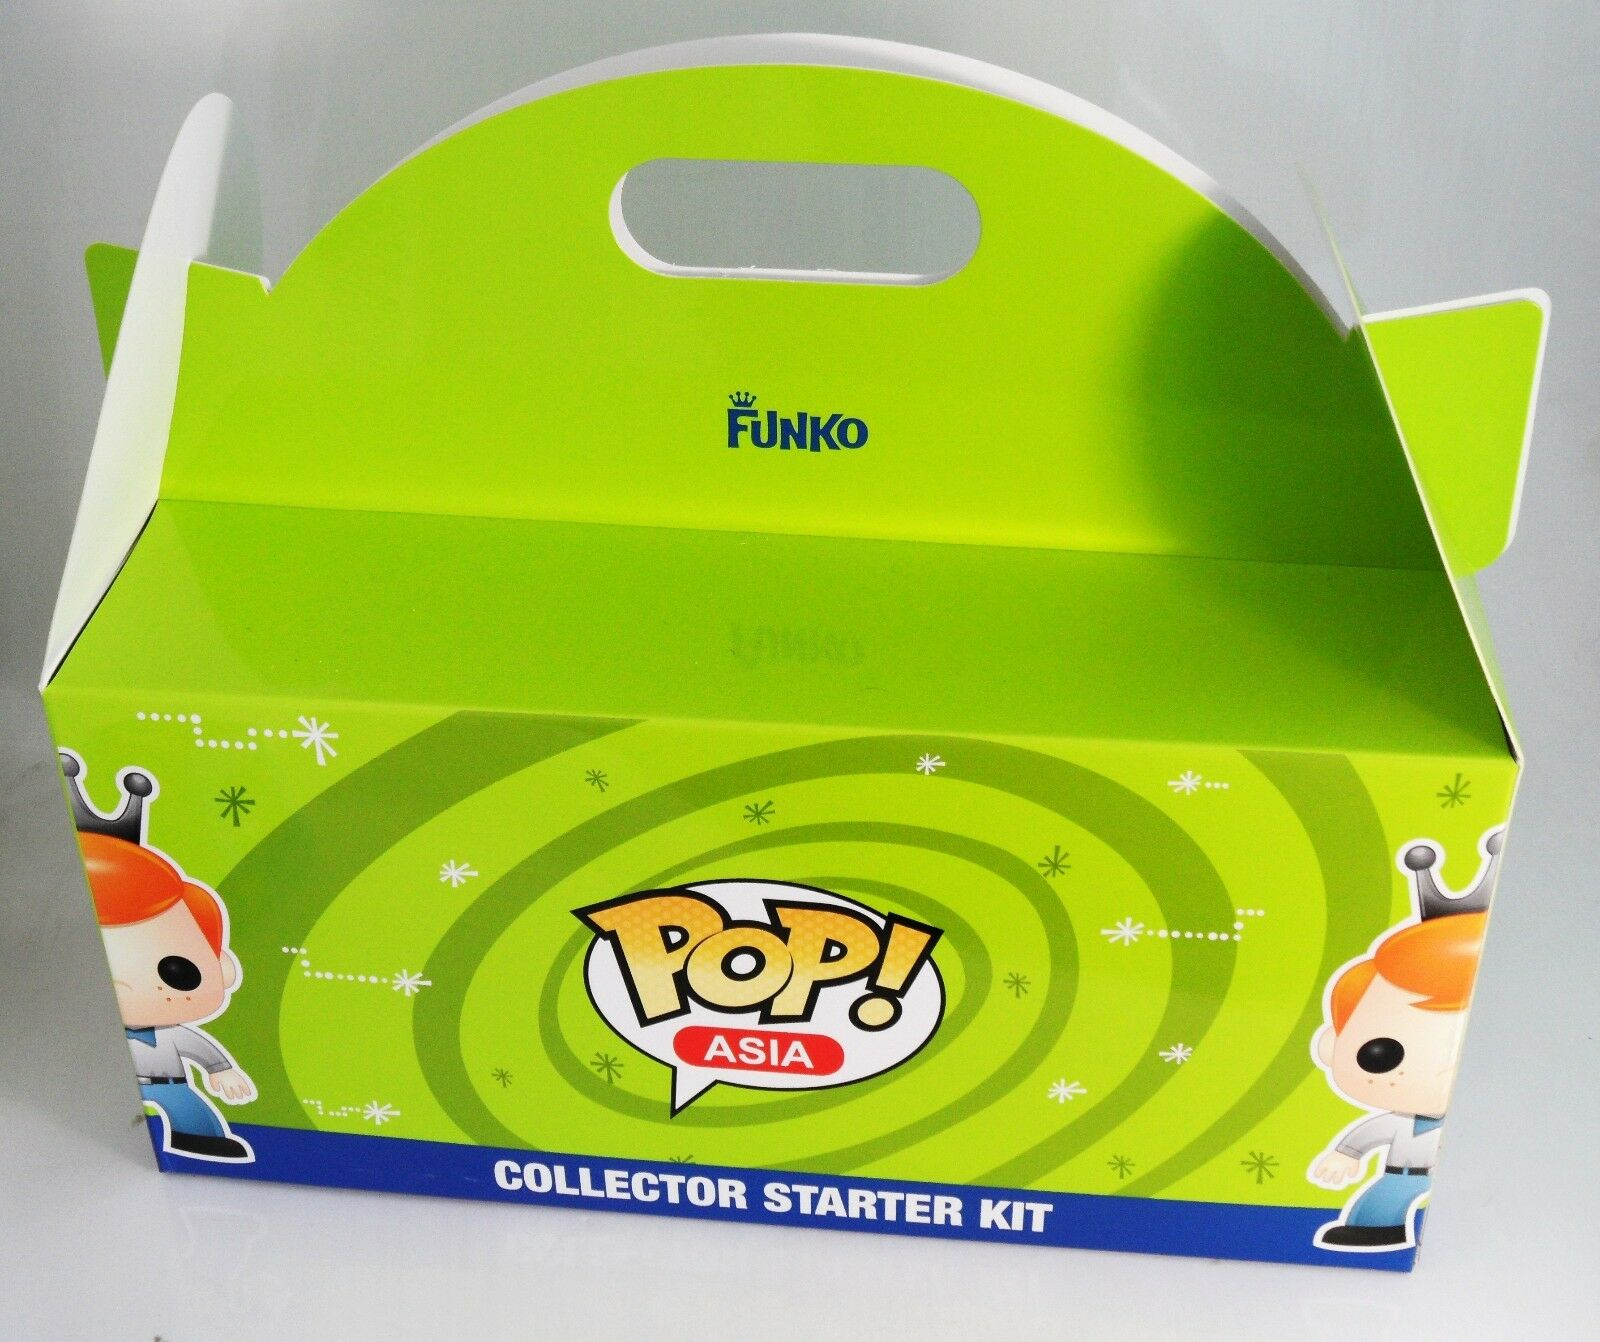 FUNKO POP ASIA starter KIT frossody Monkey King W/Pins SDCC 2015 comic con